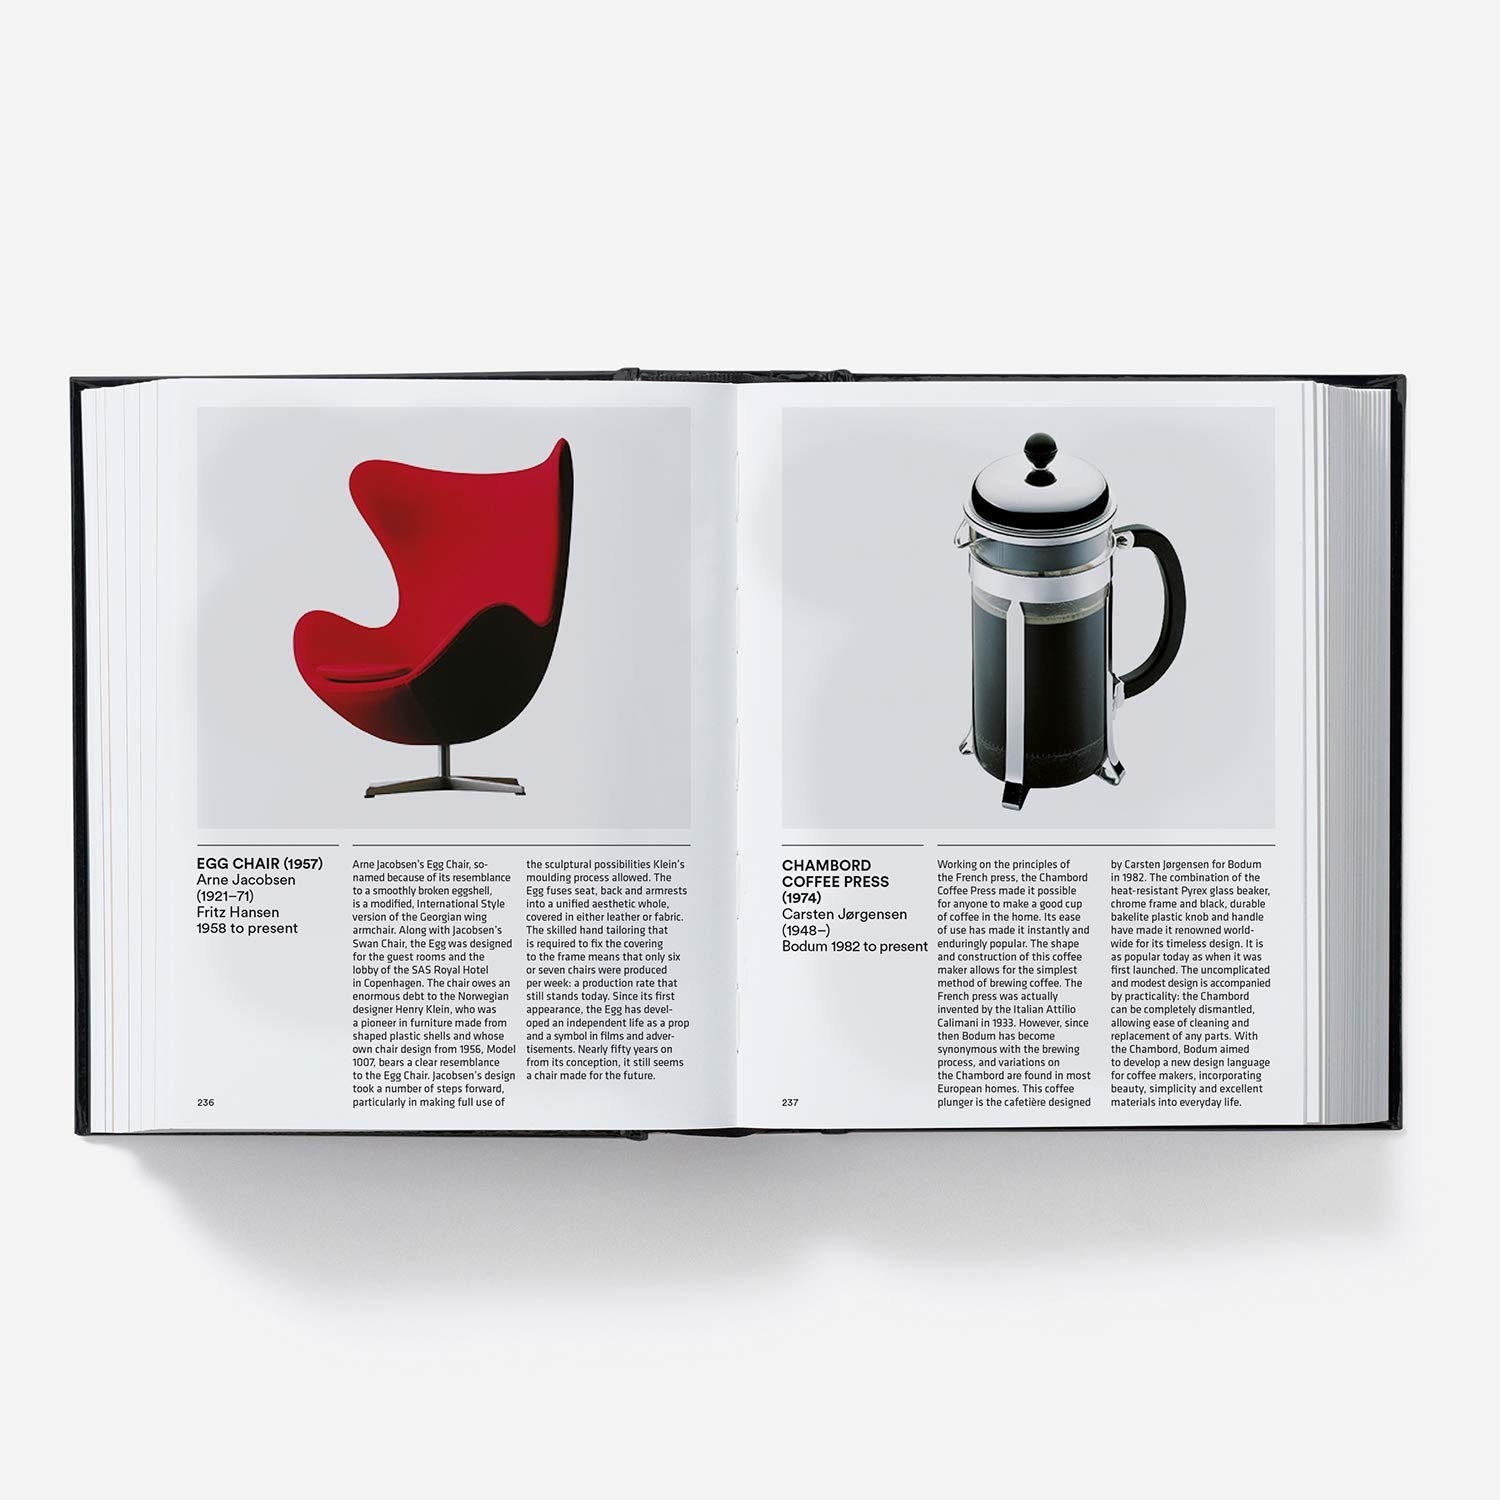 Design Book open to Egg Chair and Chambord Coffee Press